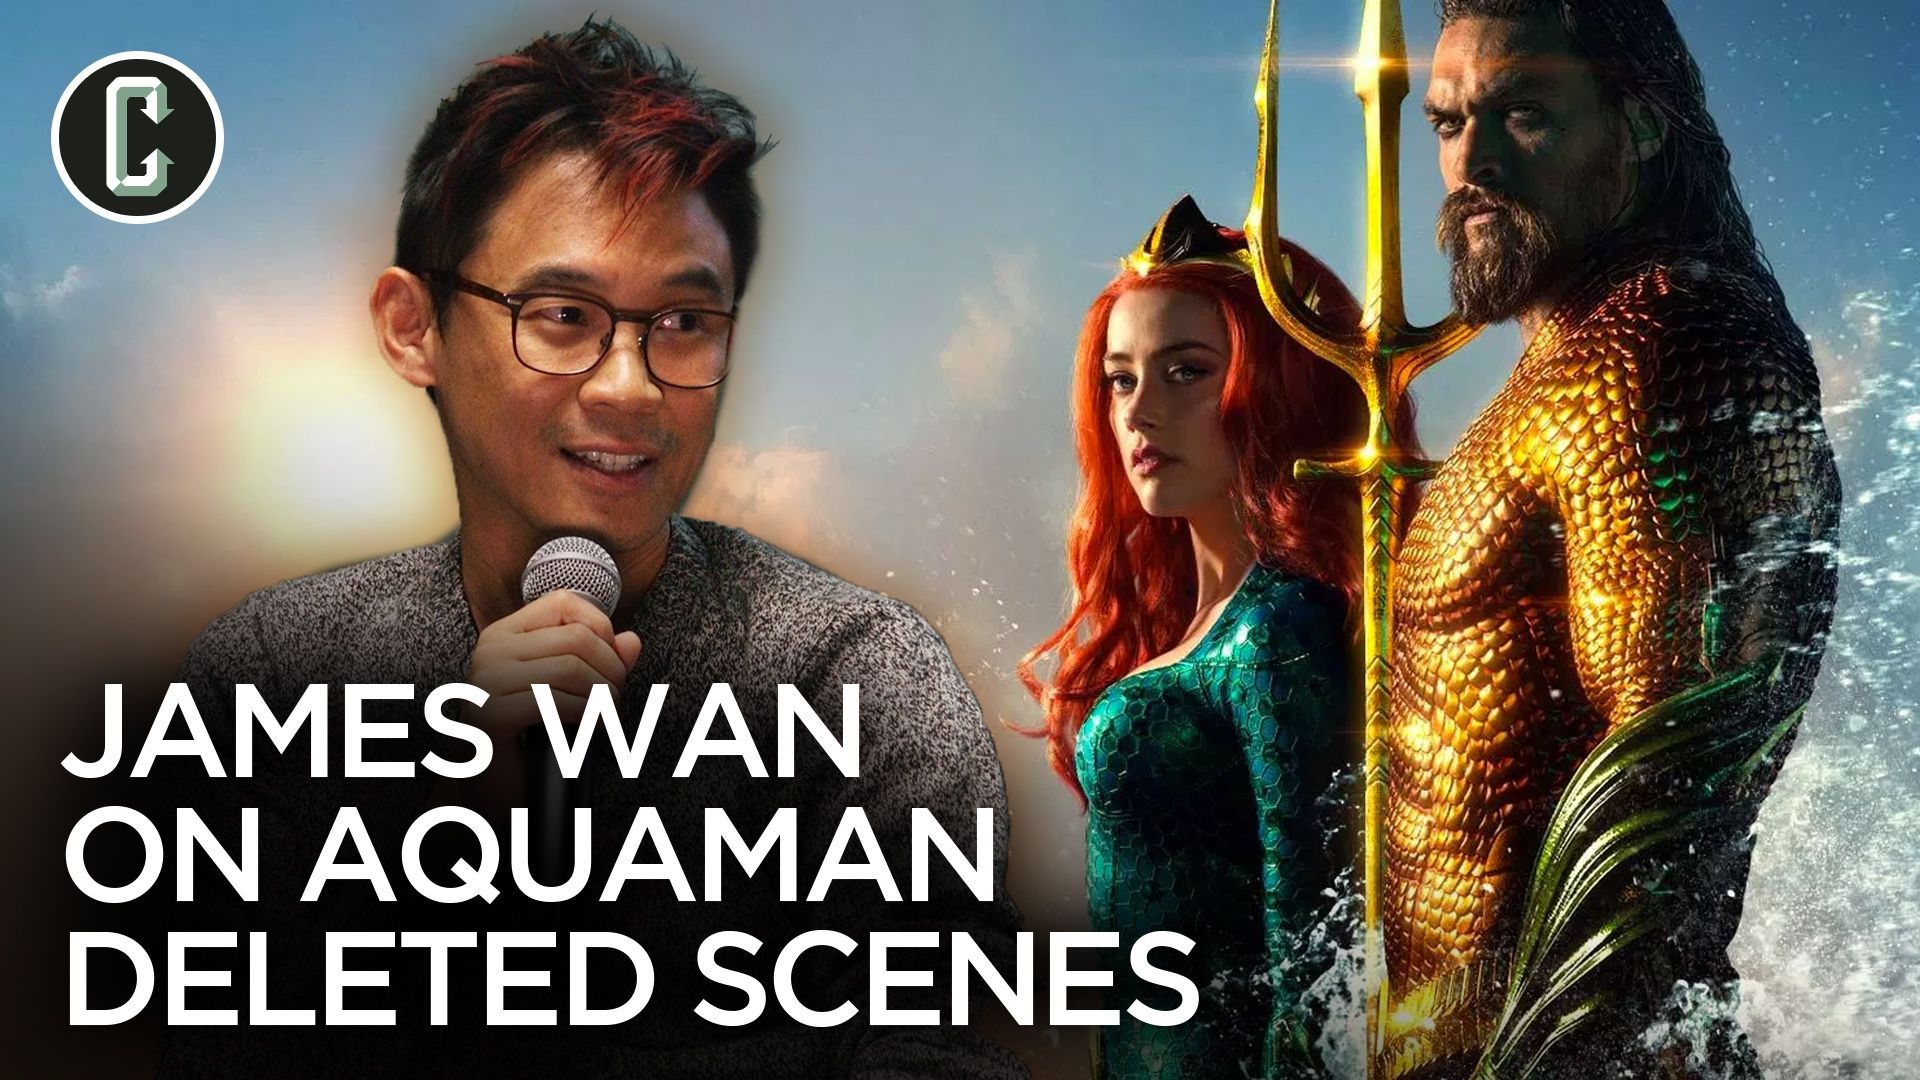 the one aquaman scene that was too weird to film